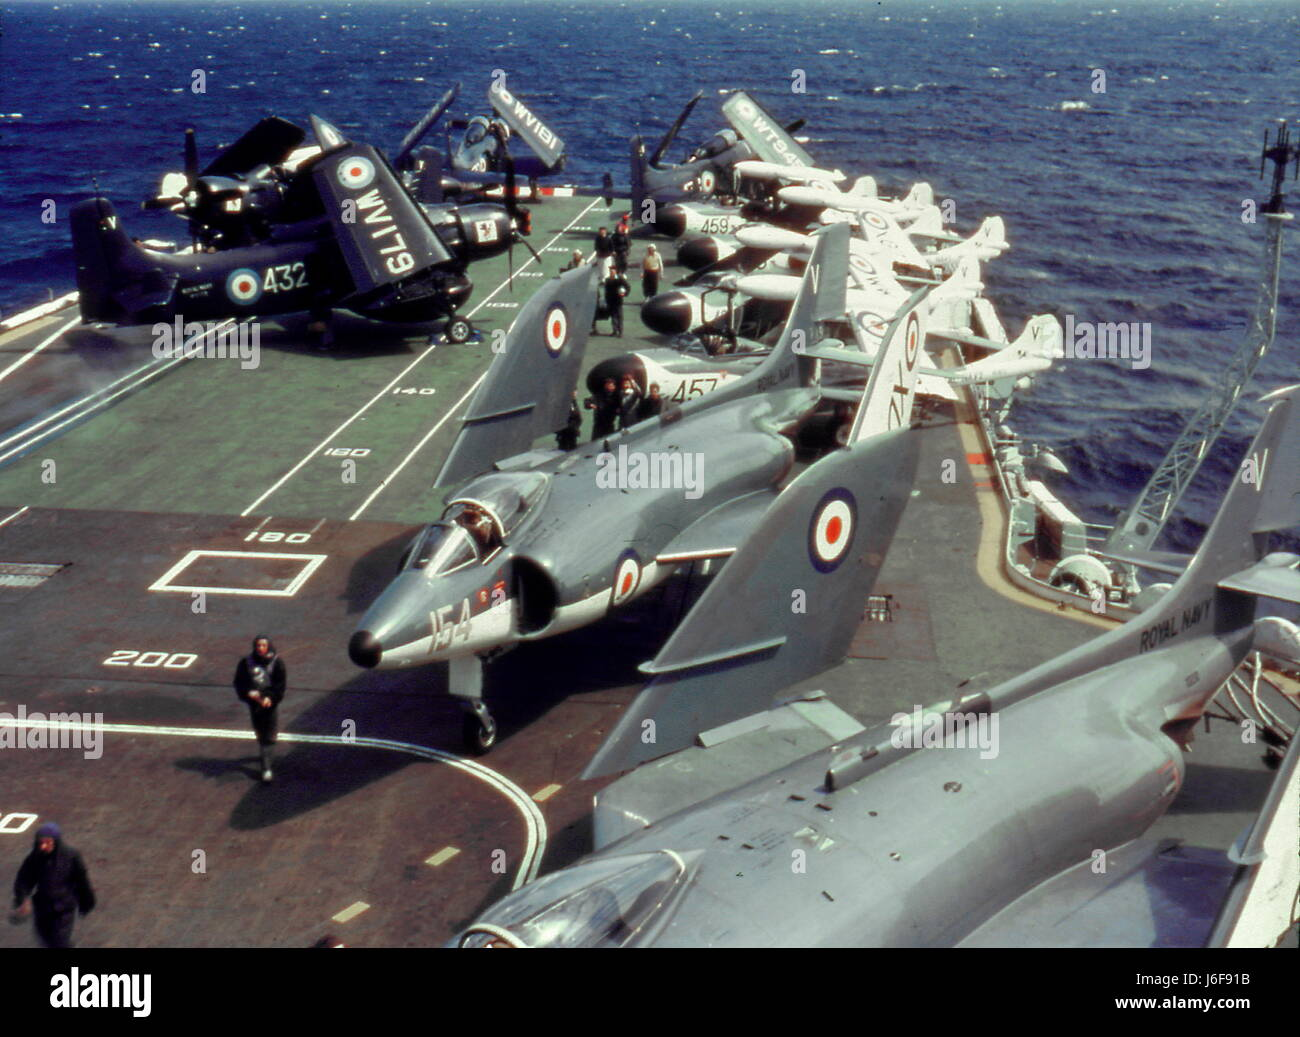 AJAXNETPHOTO. 1960S. AT SEA. - HMS VICTORIOUS. - FLIGHT DECK. CIRCA EARLY 1960S ship scrapped in 1969.  PHOTO:VIV - Stock Image